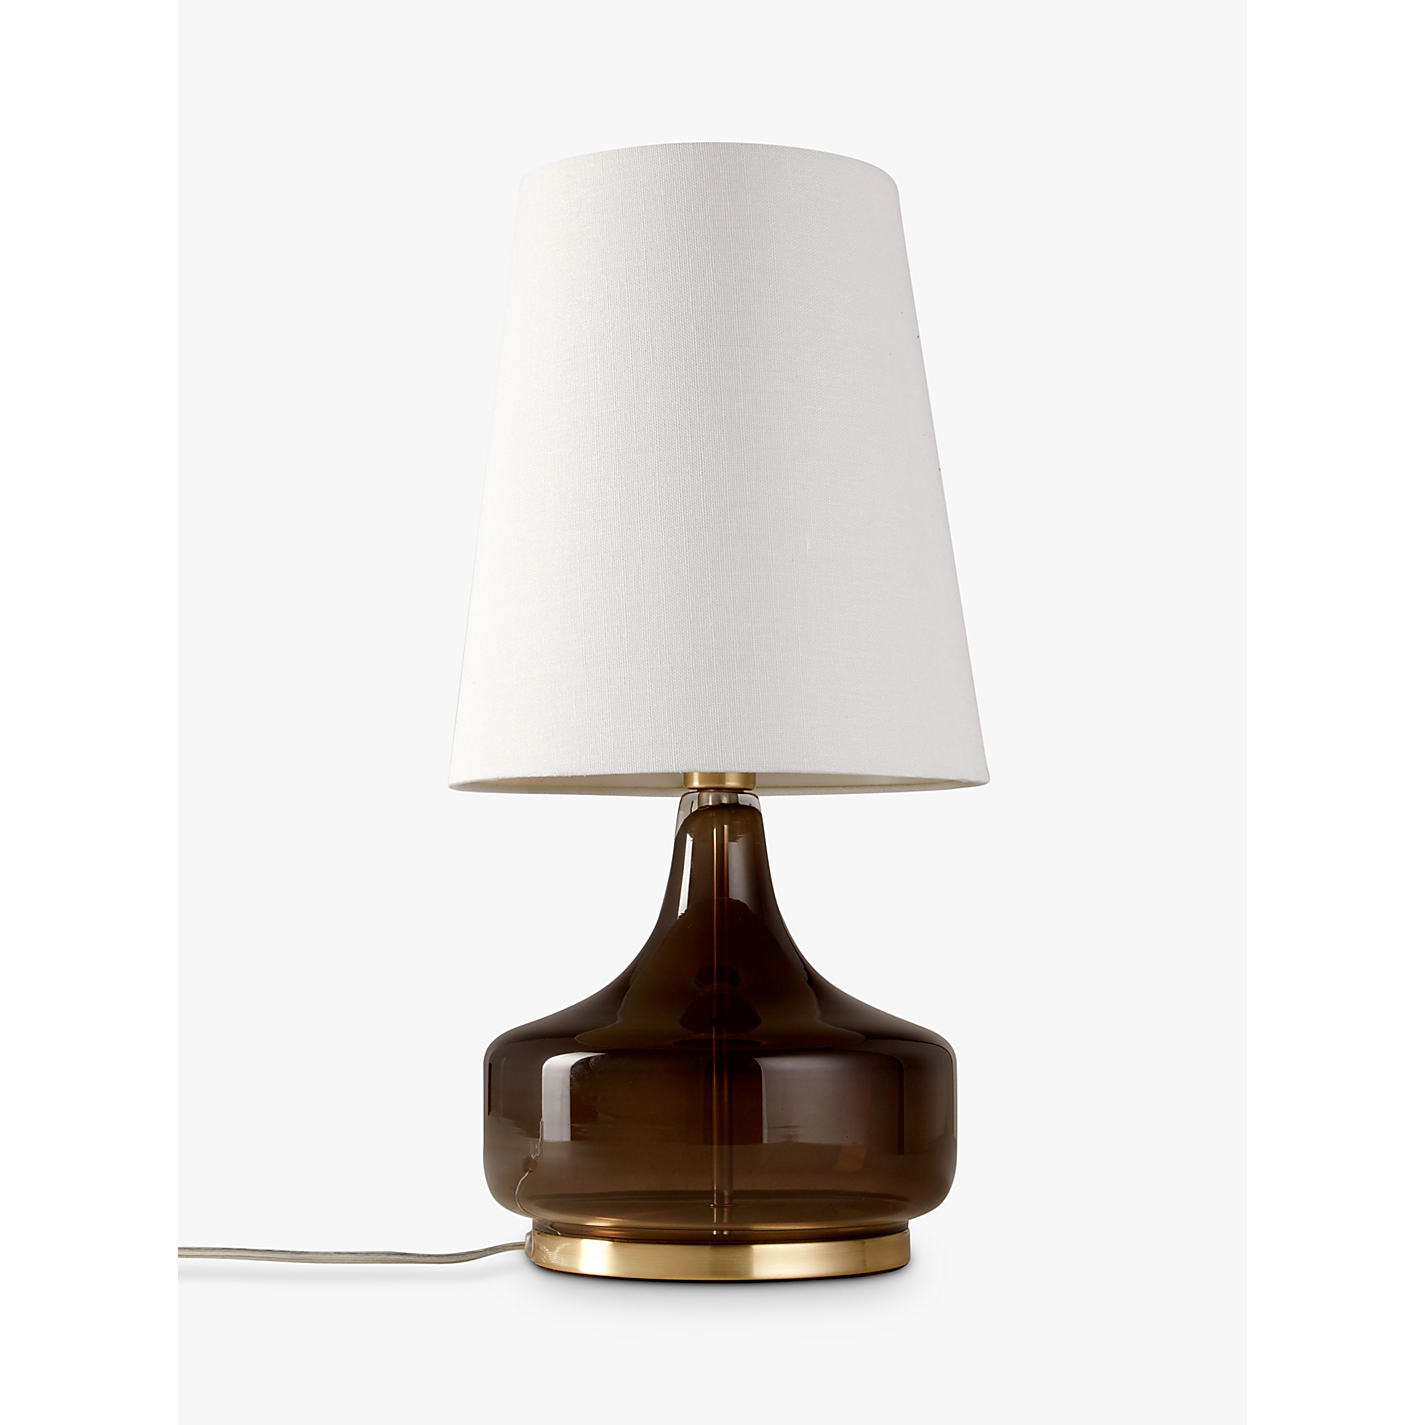 Buy john lewis atley table lamp john lewis buy john lewis atley table lamp online at johnlewis geotapseo Image collections